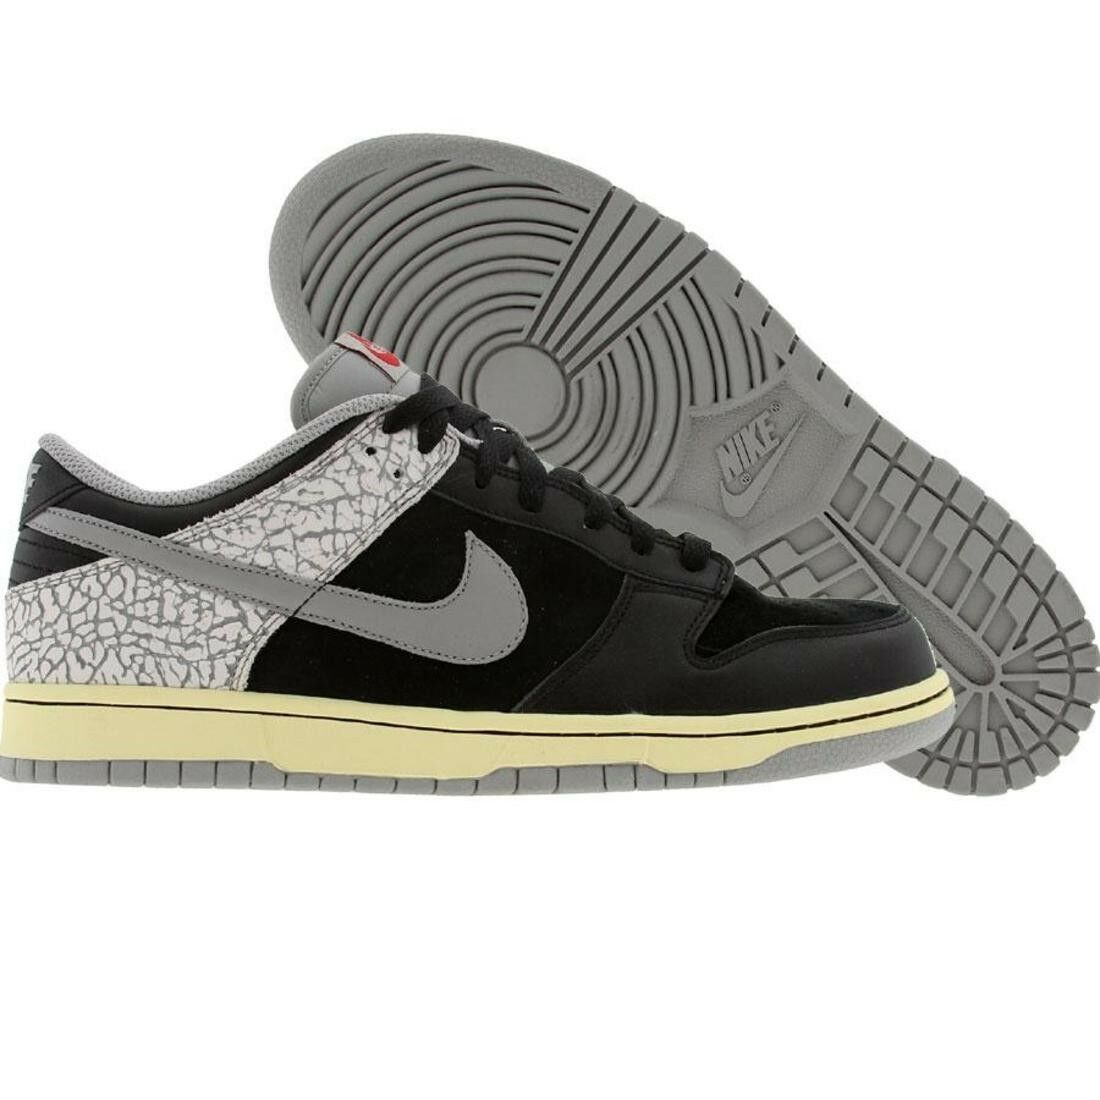 304714-905 Nike Dunk Low CL Jordan Pack 3 III Black Cement Bred Fear White